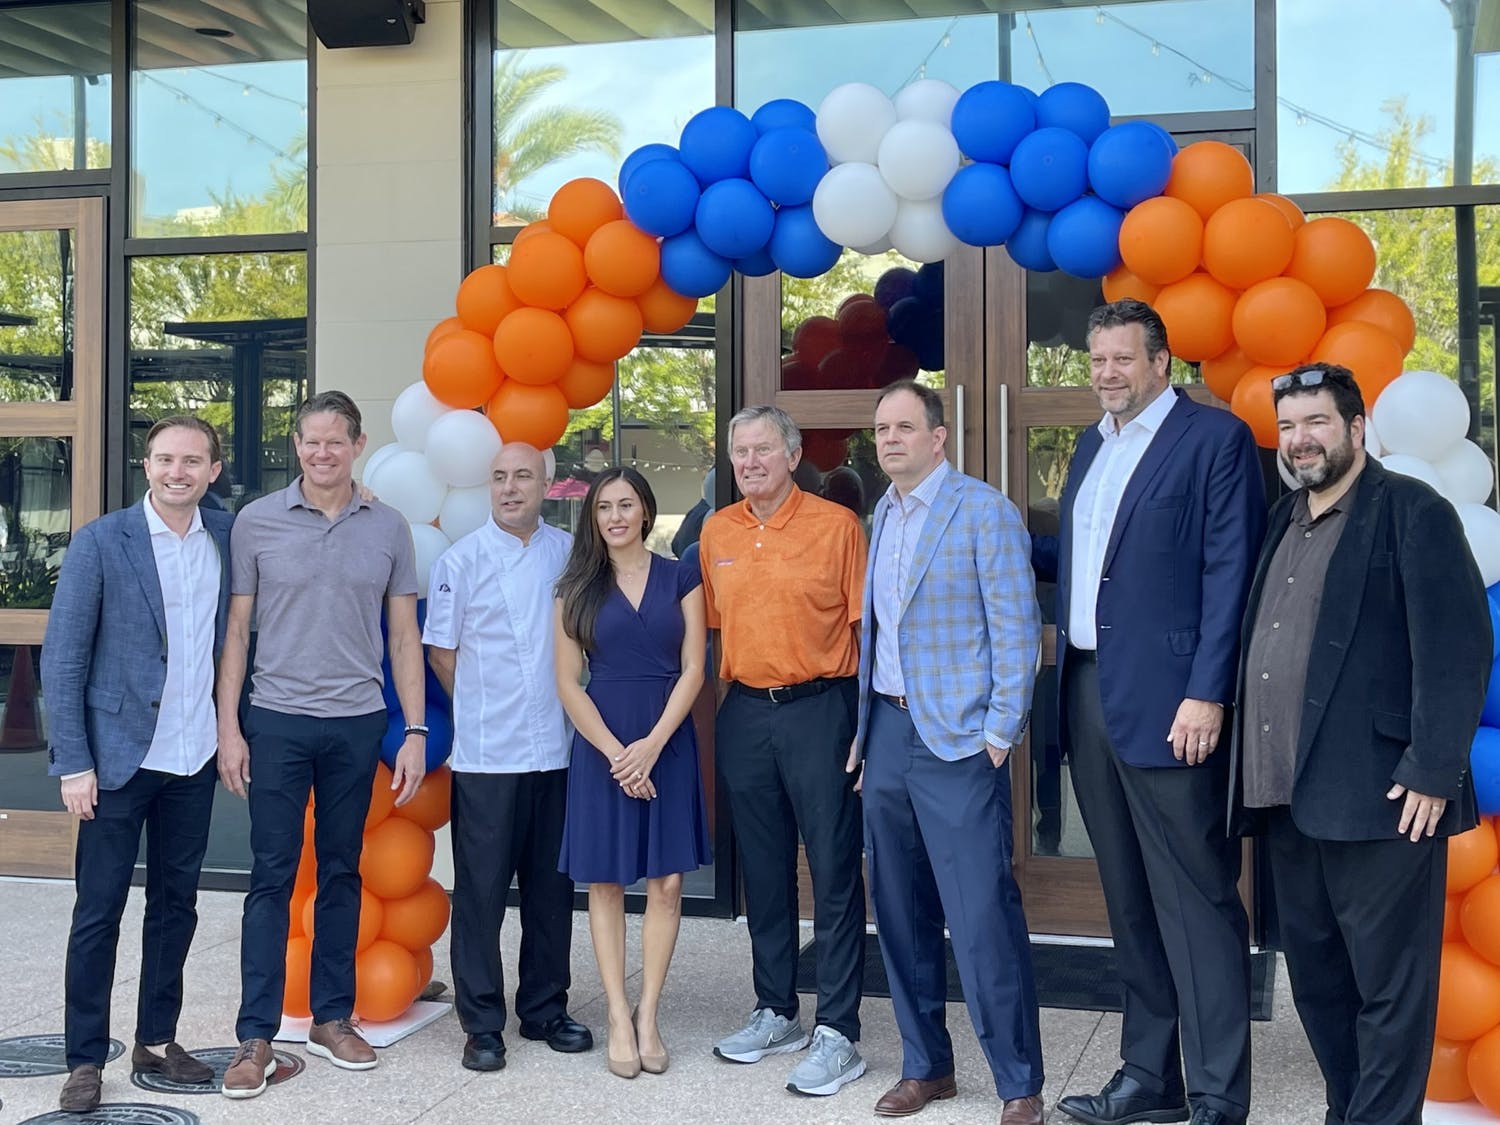 Legendary Gator football coach Steve Spurrier gathered with family and staff to celebrate the opening of Spurrier's Gridiron Grille. The restaurant, located at 4860 SW 31st Place, opened Aug. 11.